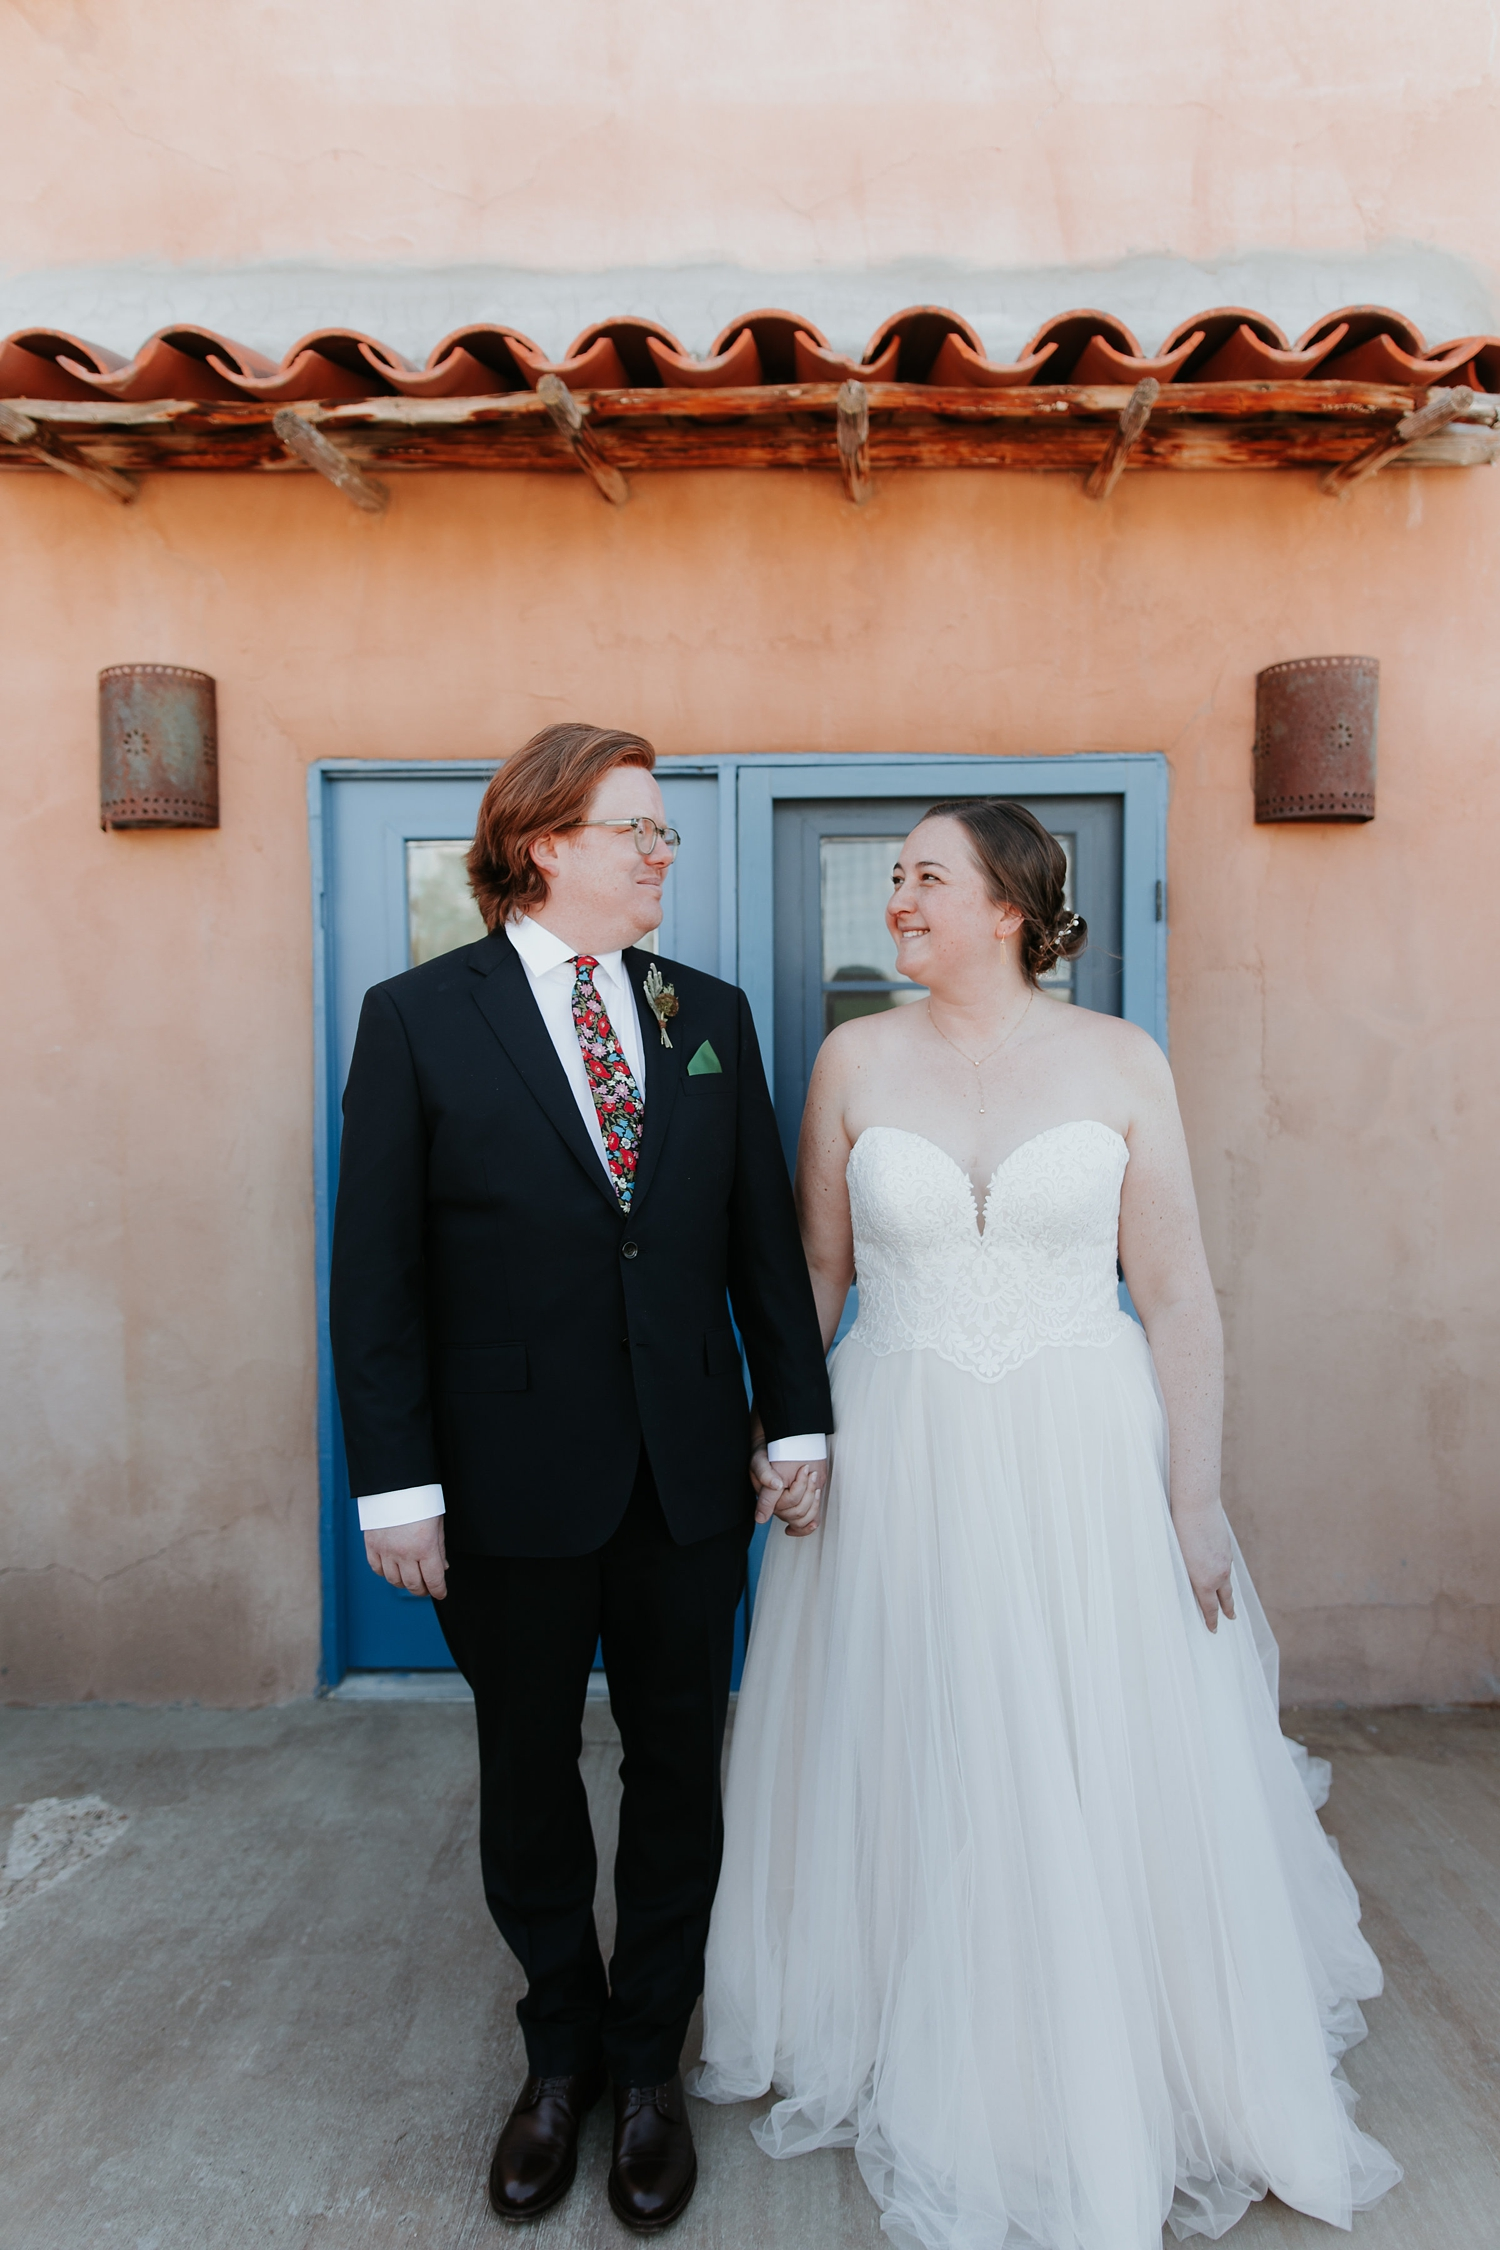 Alicia+lucia+photography+-+albuquerque+wedding+photographer+-+santa+fe+wedding+photography+-+new+mexico+wedding+photographer+-+hacienda+dona+andrea+wedding+-+destination+wedding+-+new+york+couple_0044.jpg